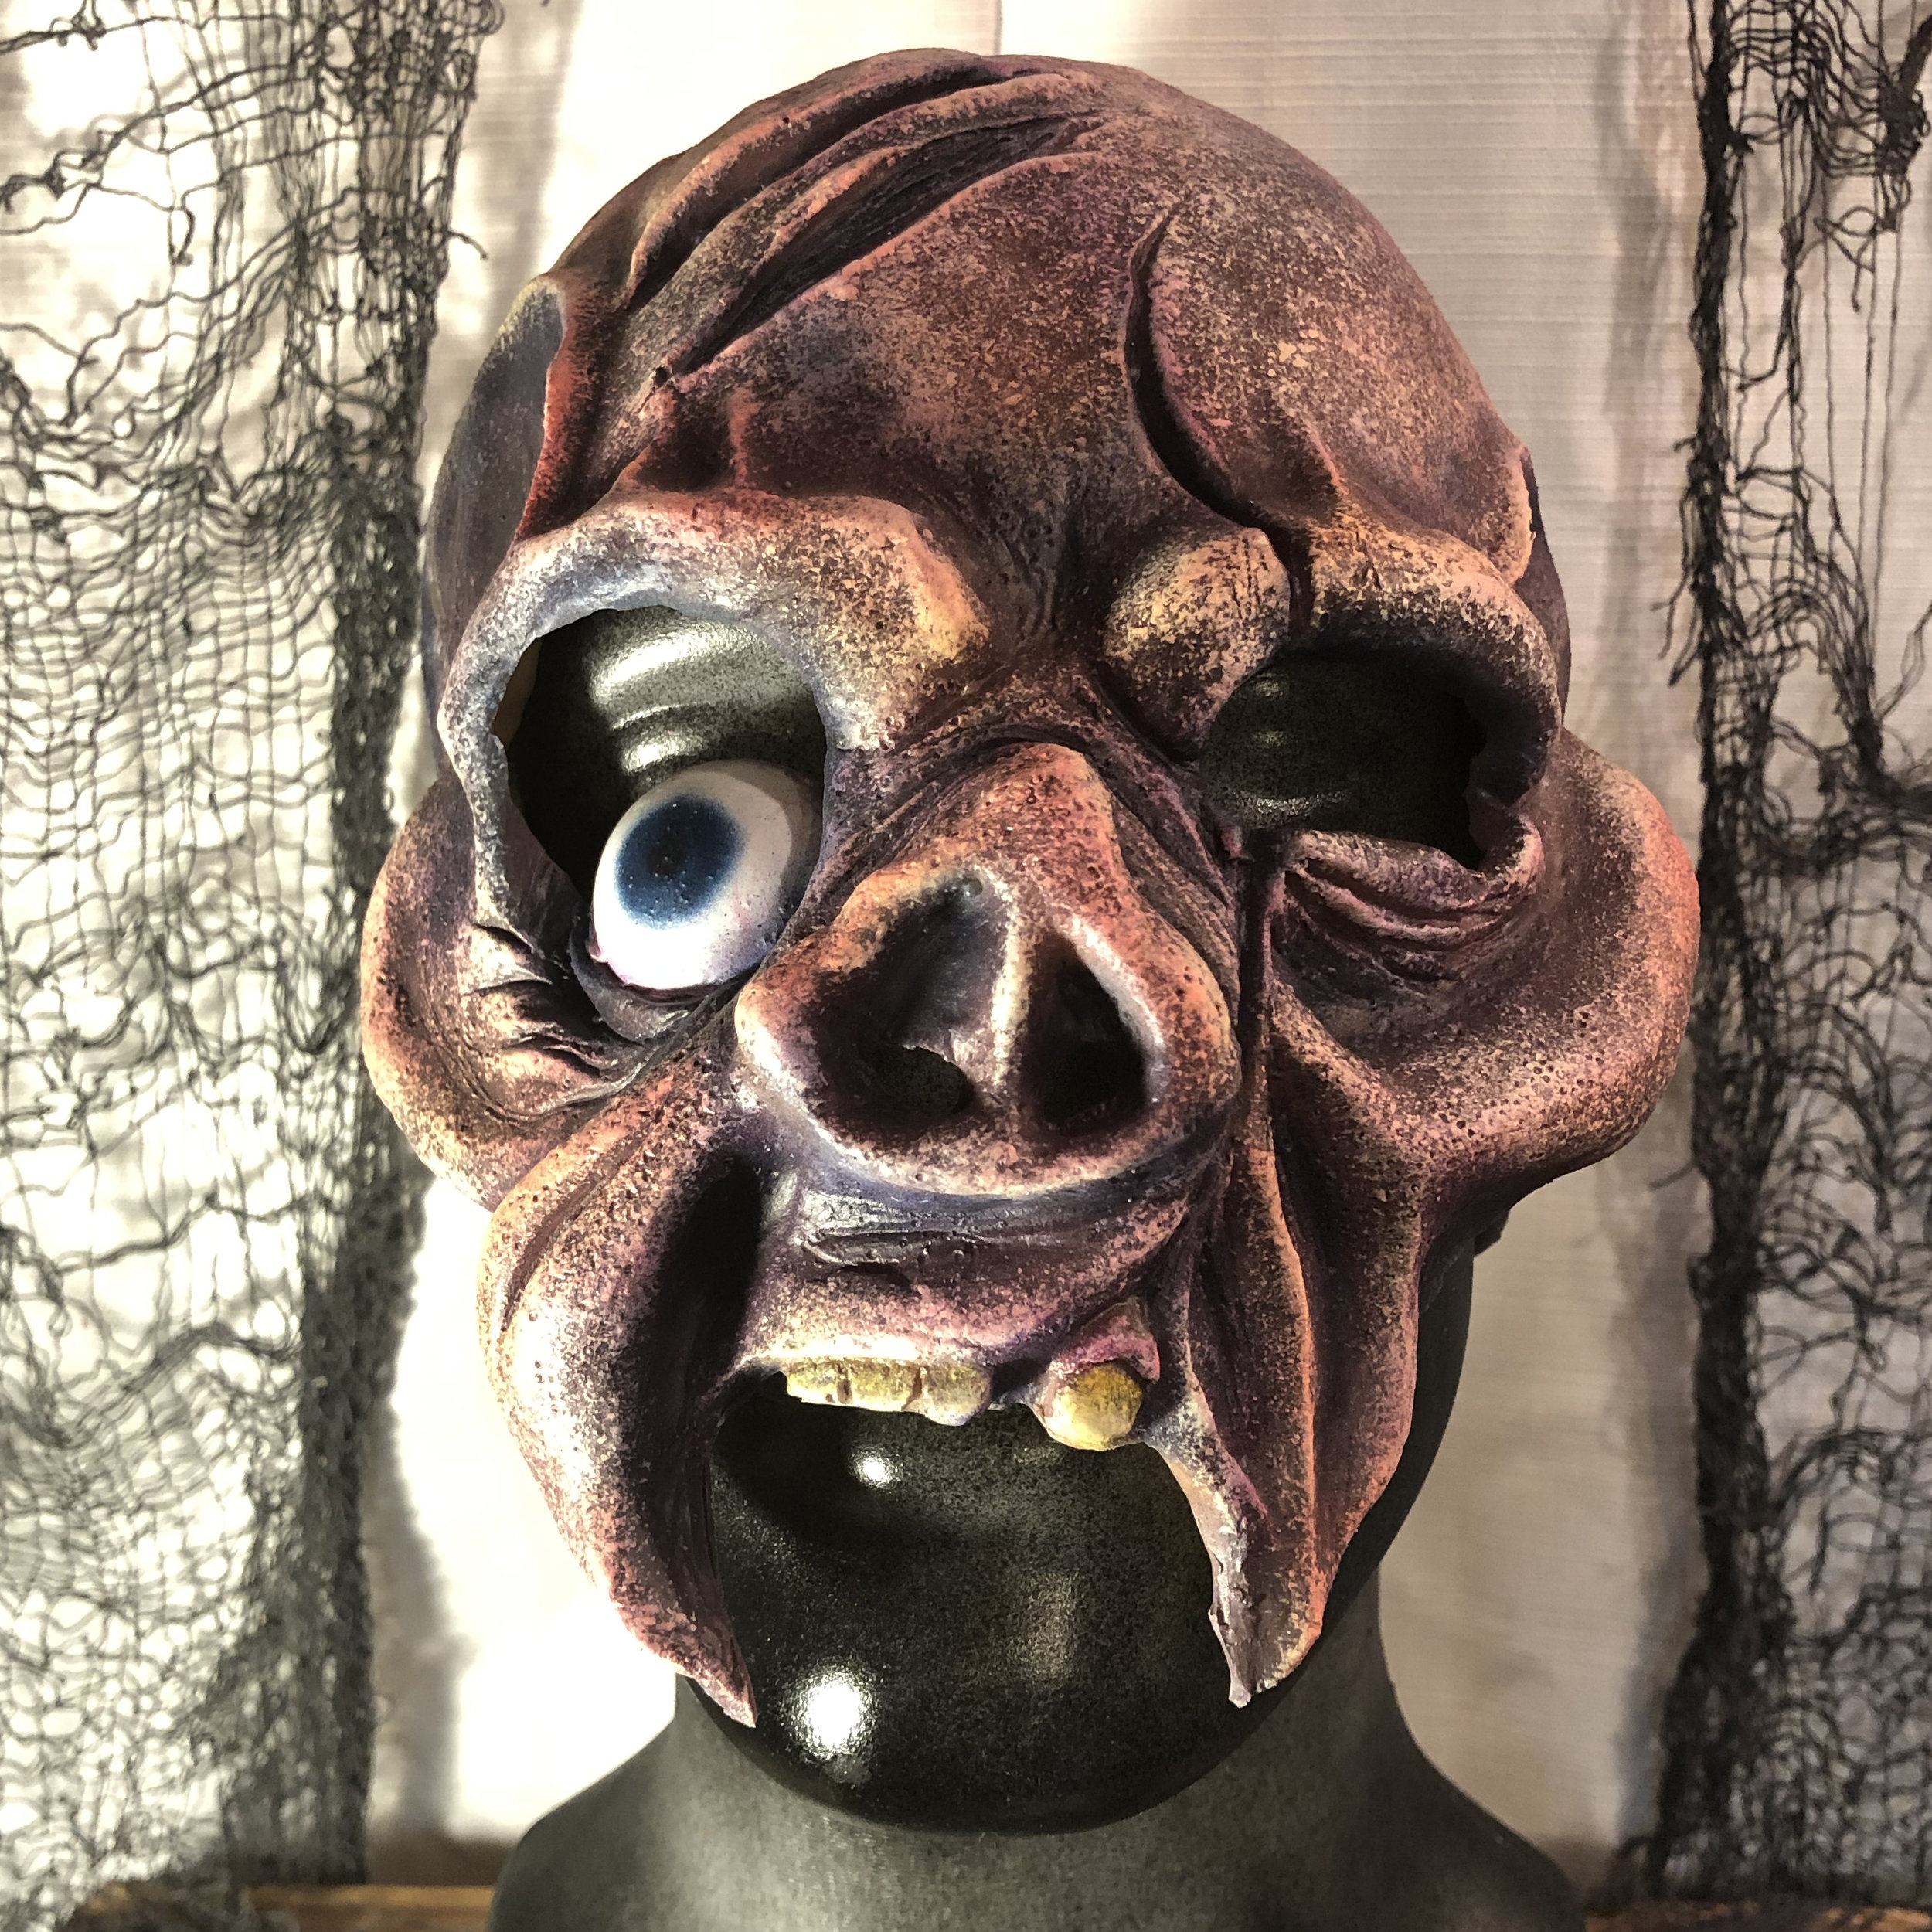 Mutant  $80.00  This chinless mask allows the wearer to have the ability to talk while disguising your appearance.  100% Natural Latex Mask